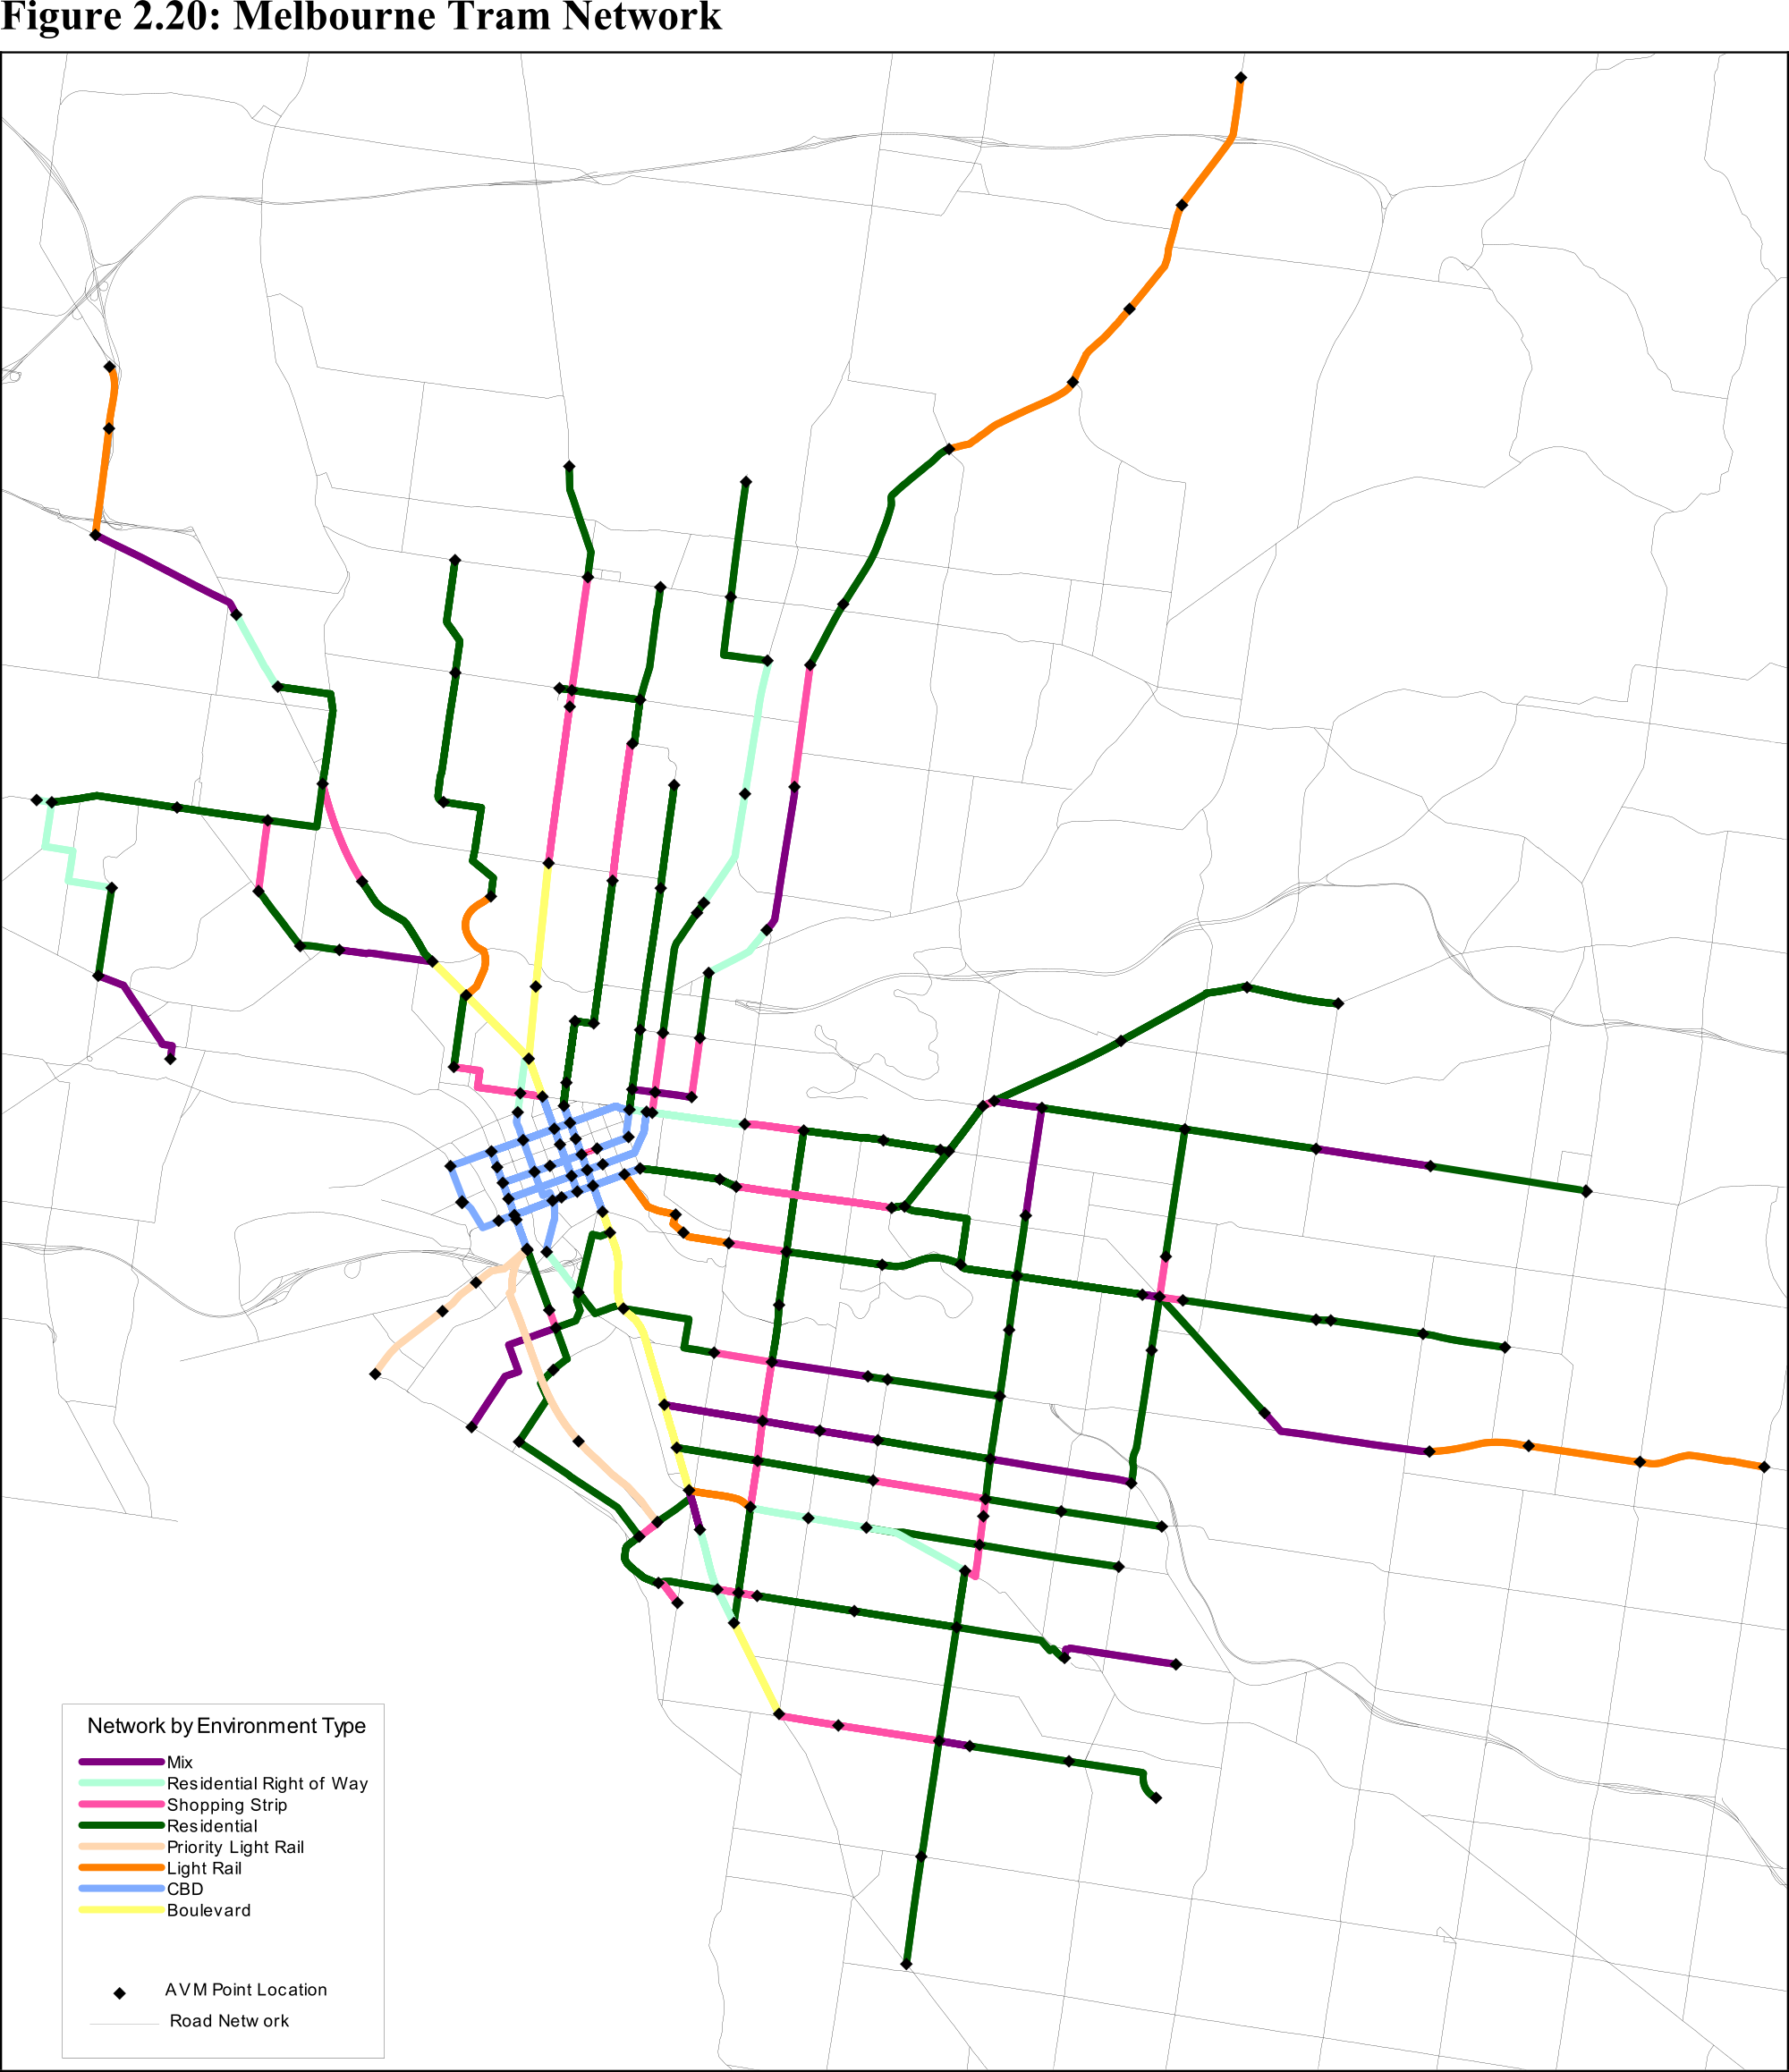 Categorising the Melbourne tram network by environment Waking up